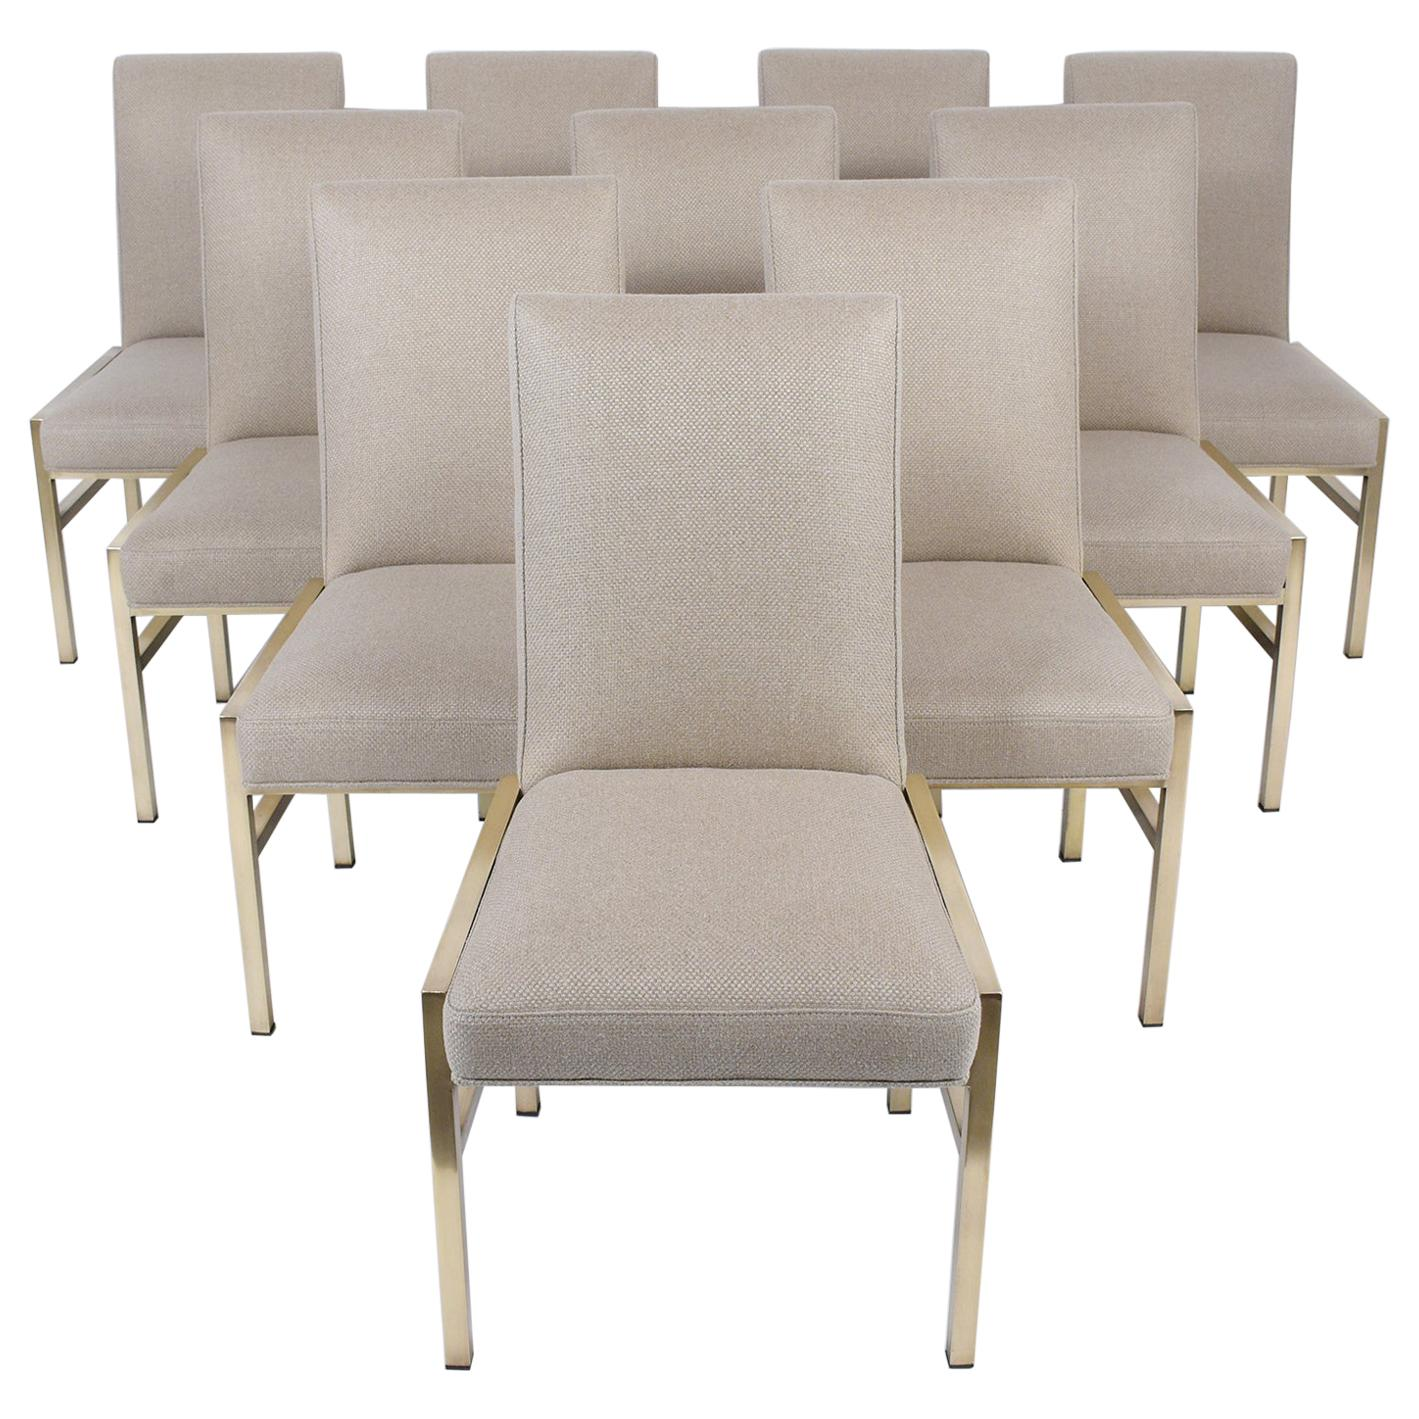 Set of Ten Mid-Century Dining Chairs